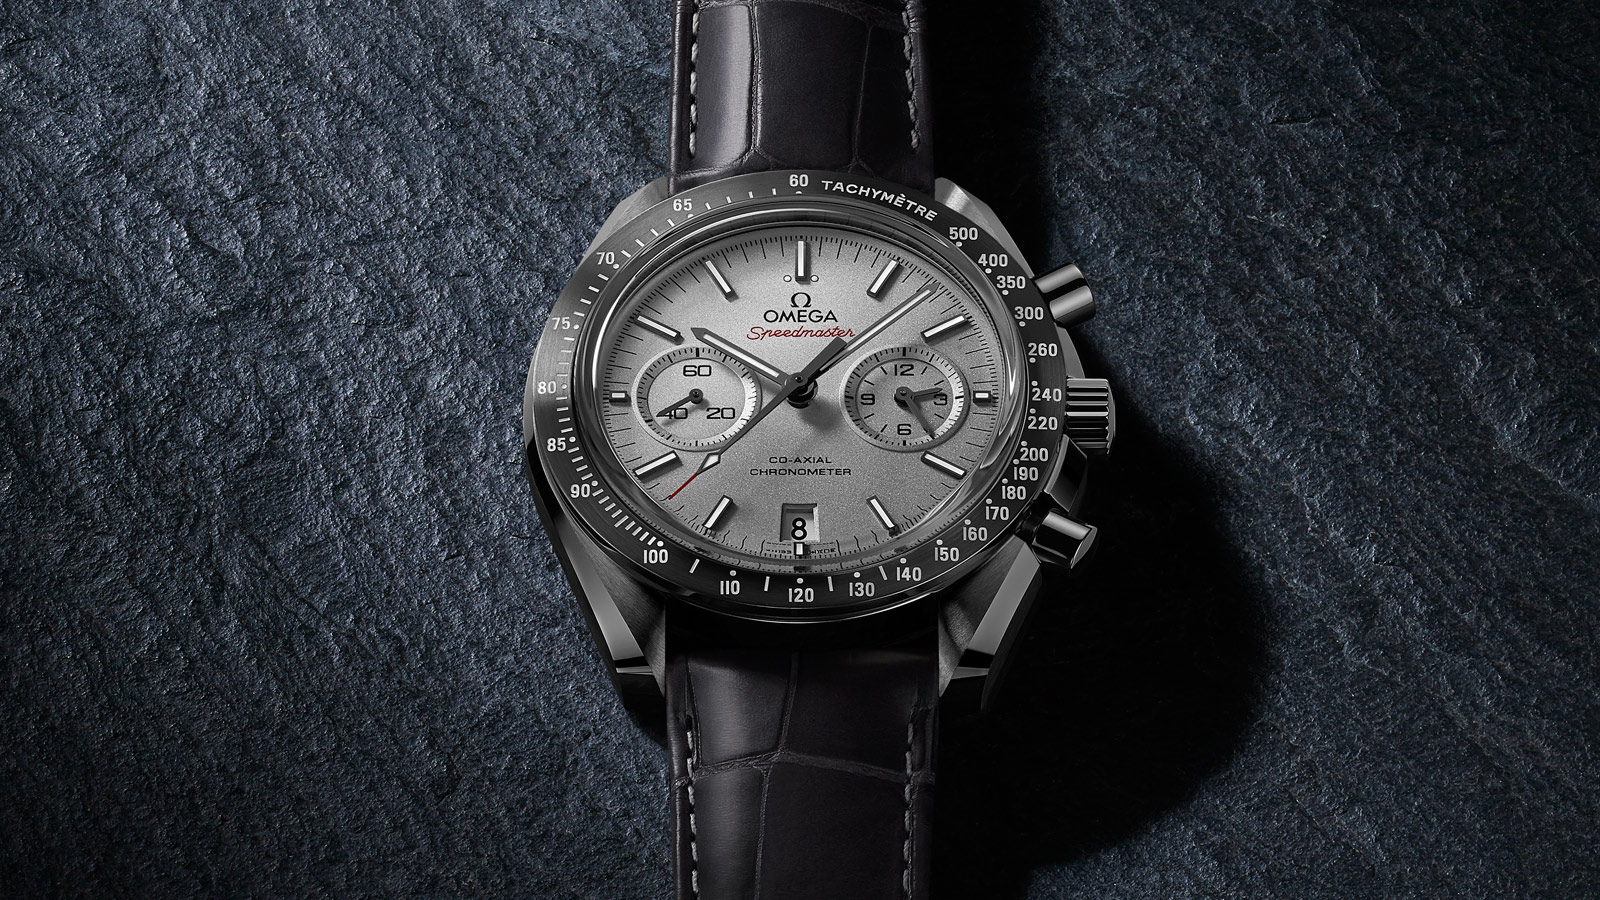 Speedmaster ムーンウォッチ Moonwatch Omega Co‑Axial Chronograph 44.25 mm - 311.93.44.51.99.001 - ビュー 1